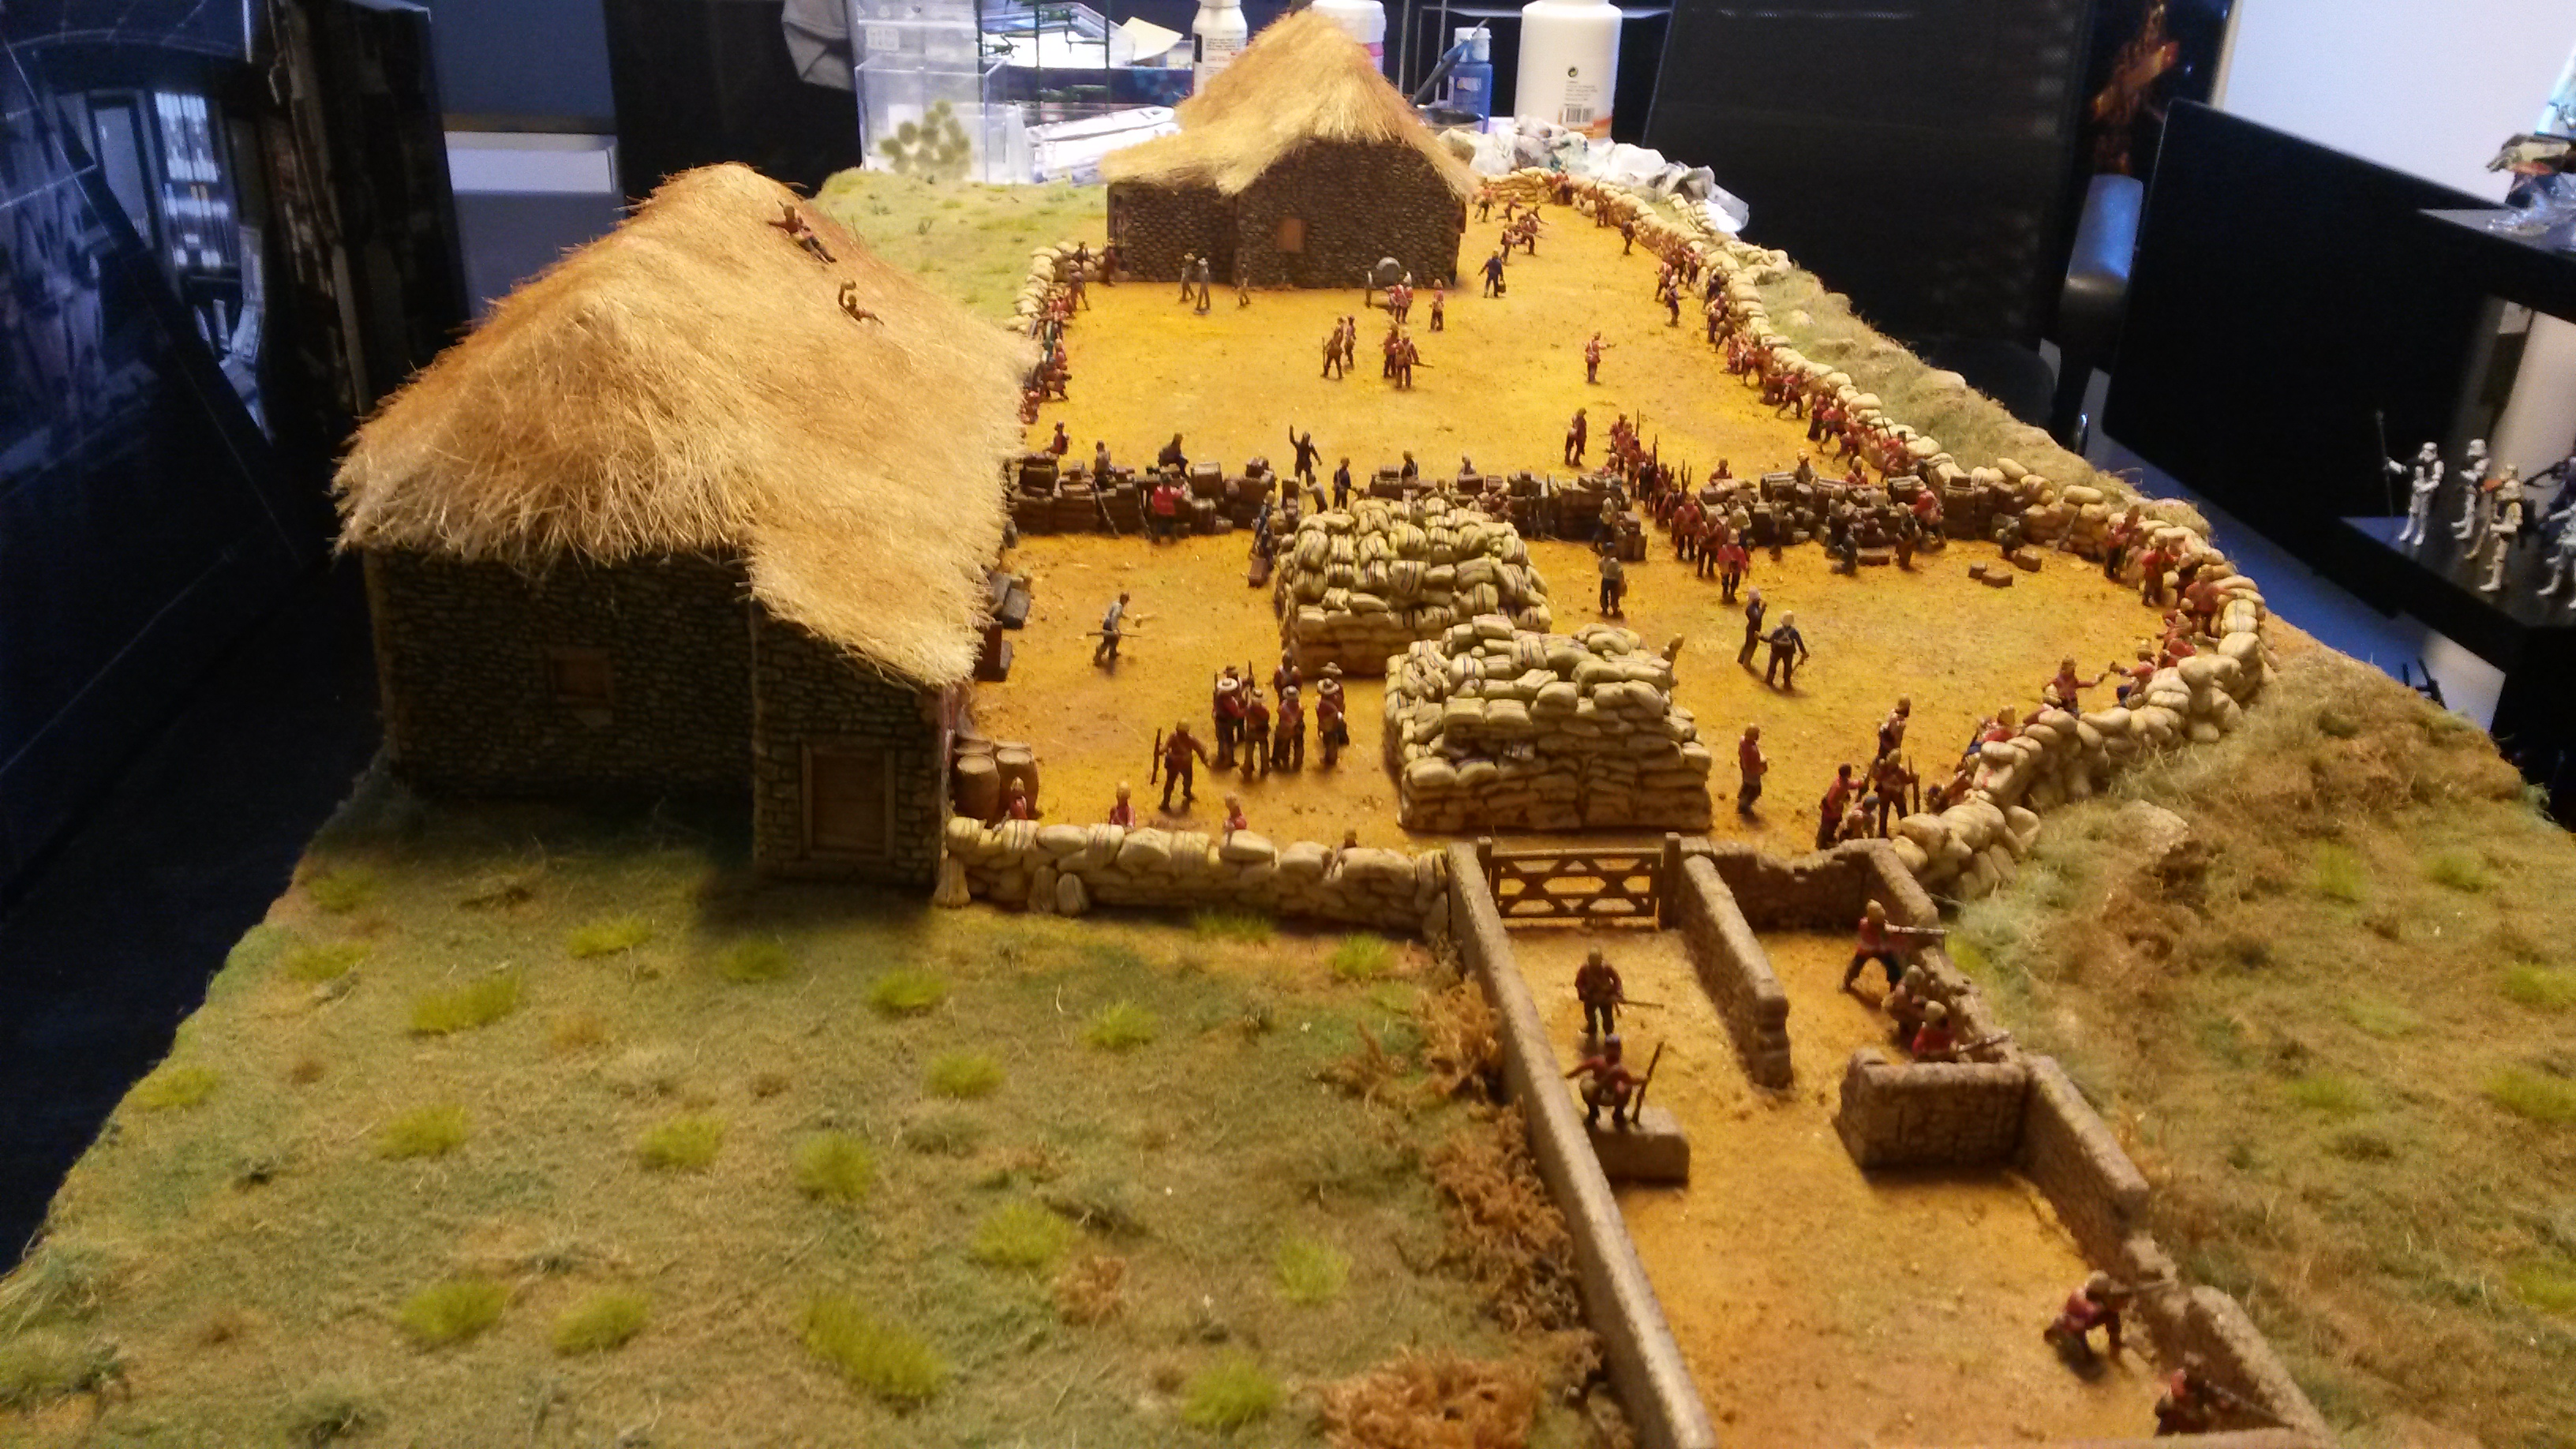 Rorke's drift avec Figurines au 1/72 (20mm)